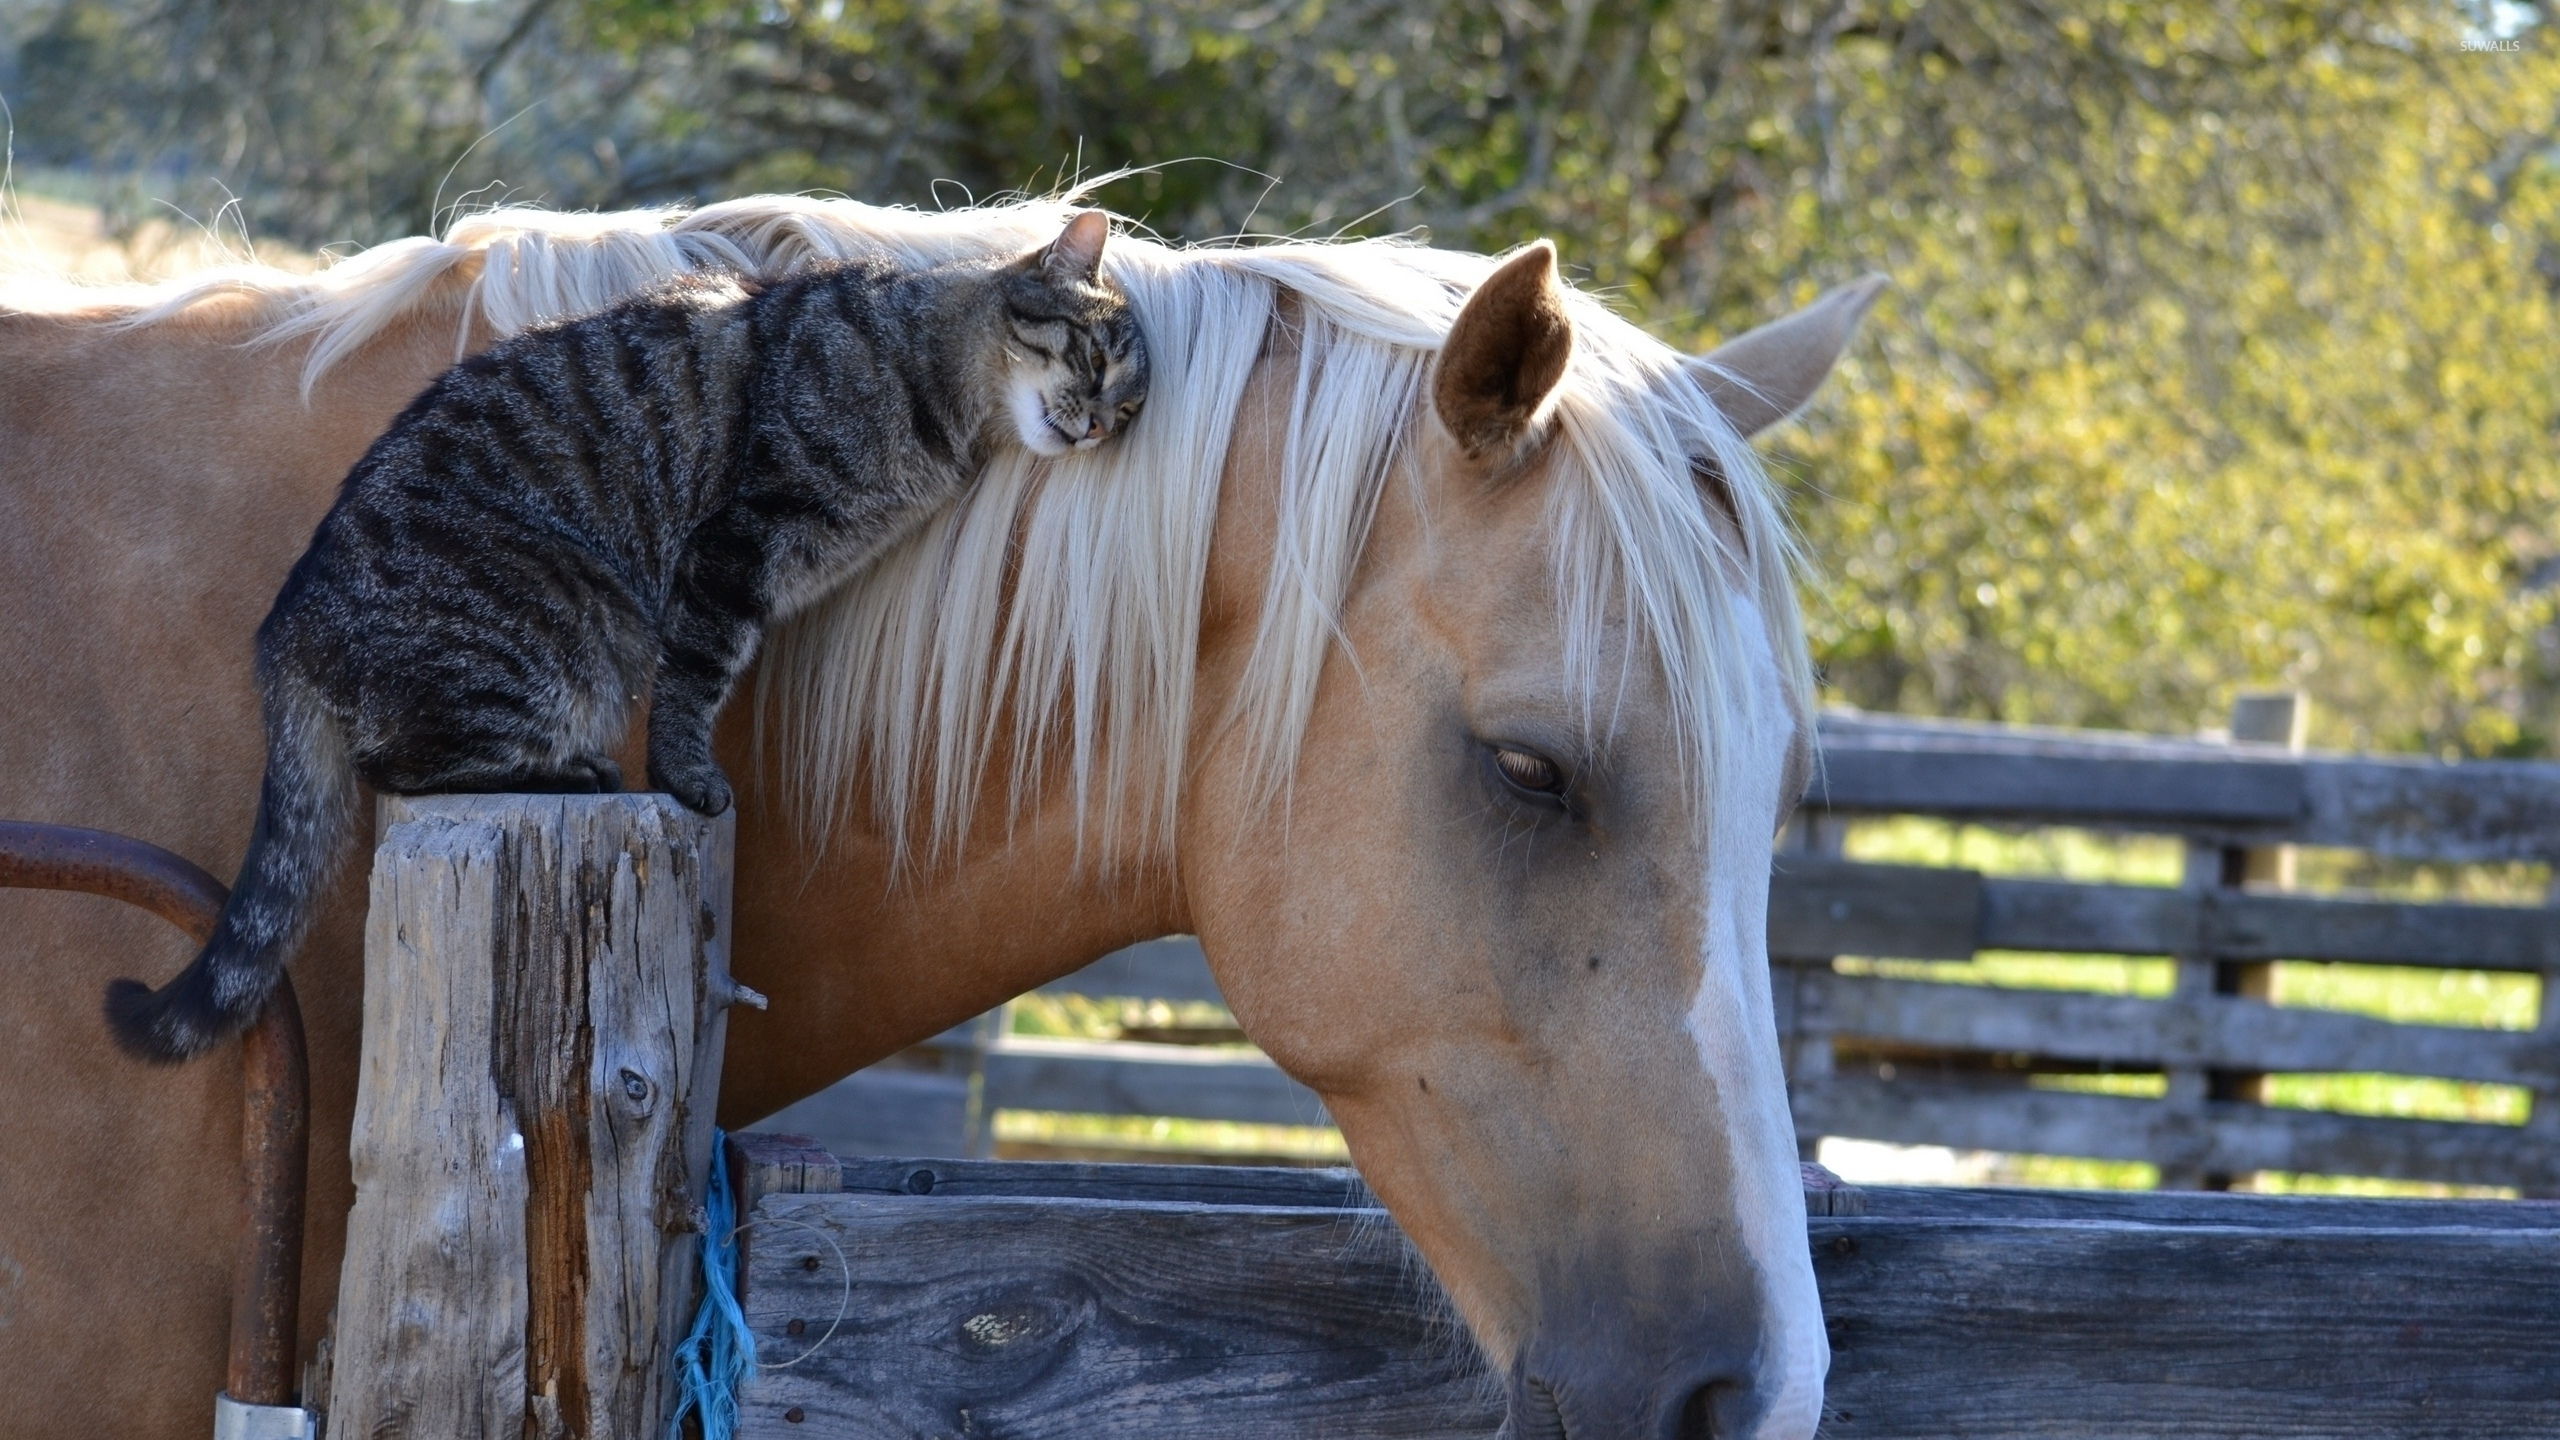 Horses In The Fall Wallpaper Cat Cuddling With A Horse Wallpaper Animal Wallpapers